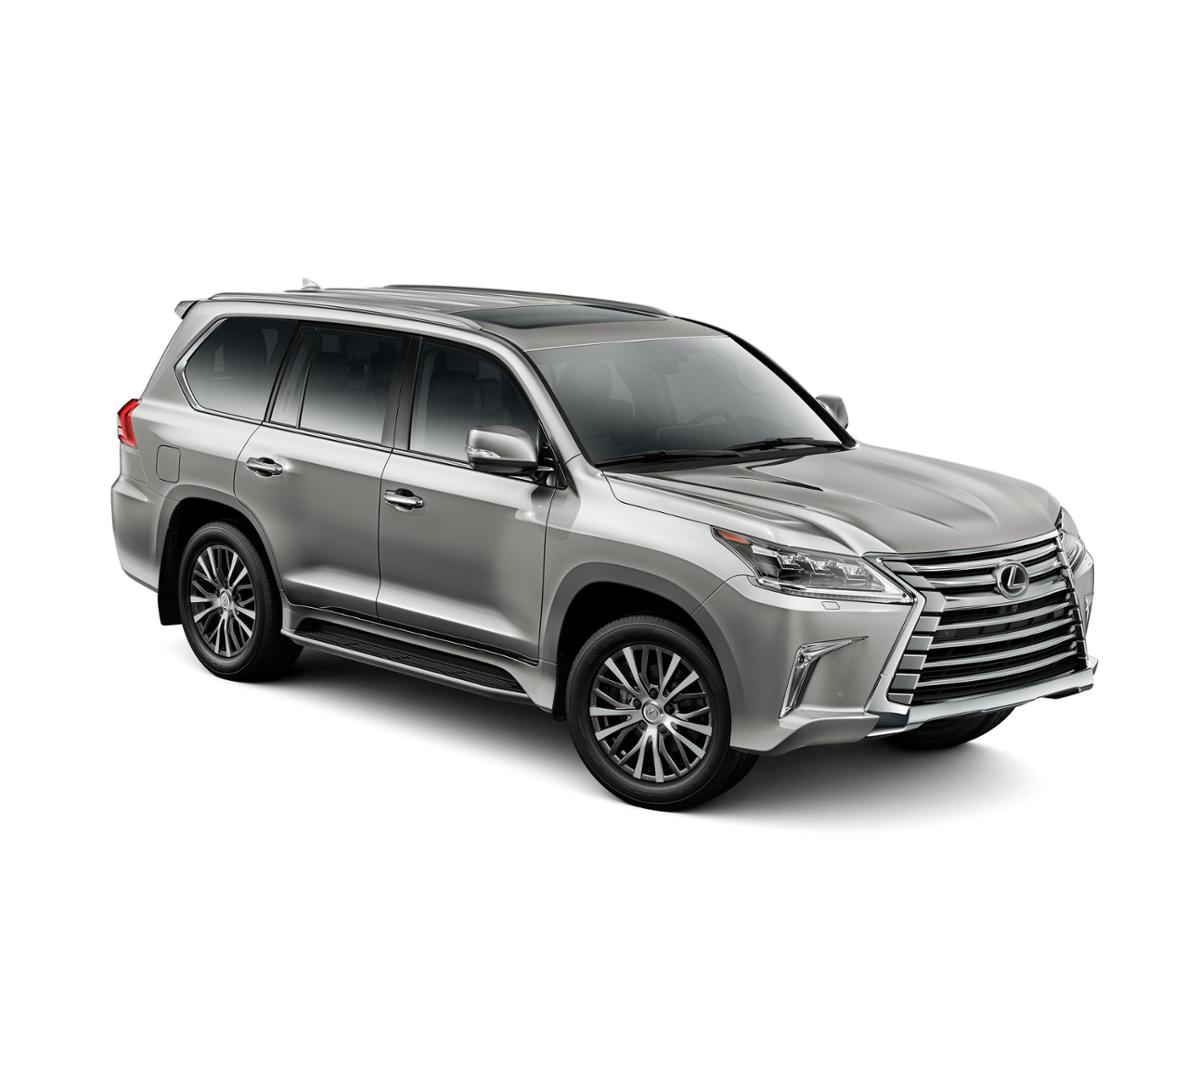 2019 Lexus LX 570 Vehicle Photo in Henderson, NV 89011